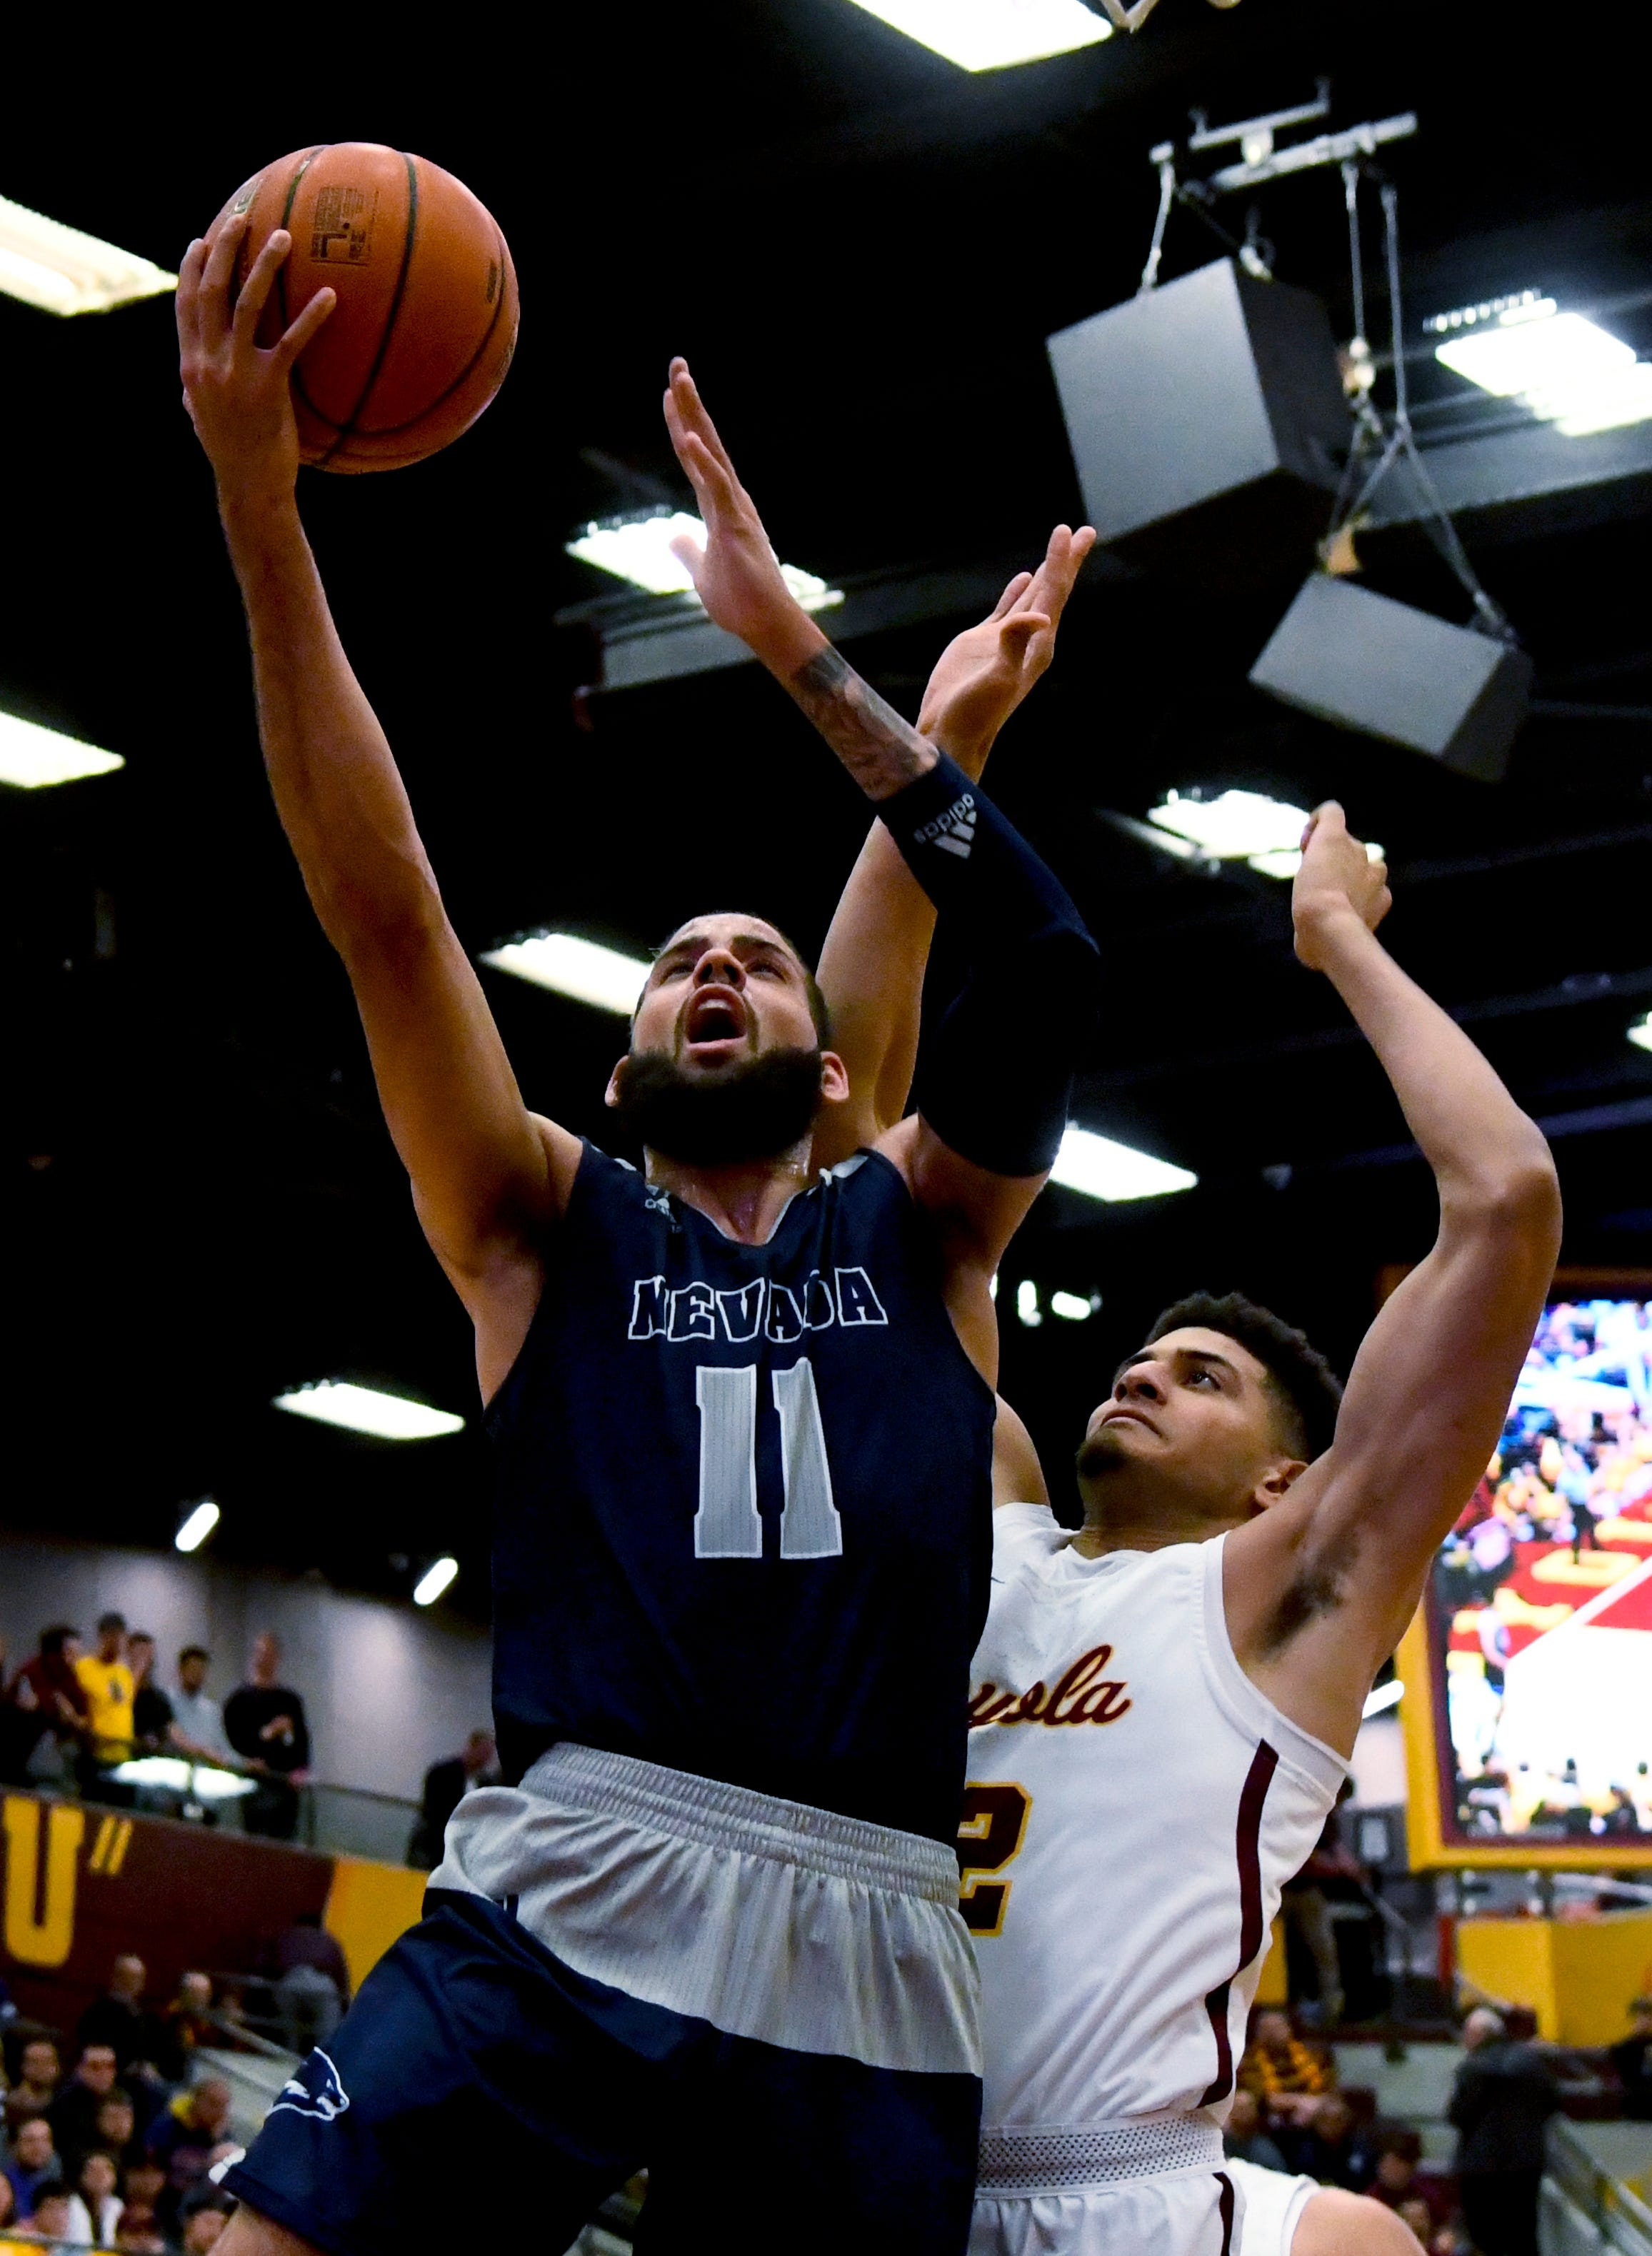 Martin twins lead No. 5 Nevada over Loyola-Chicago 79-65